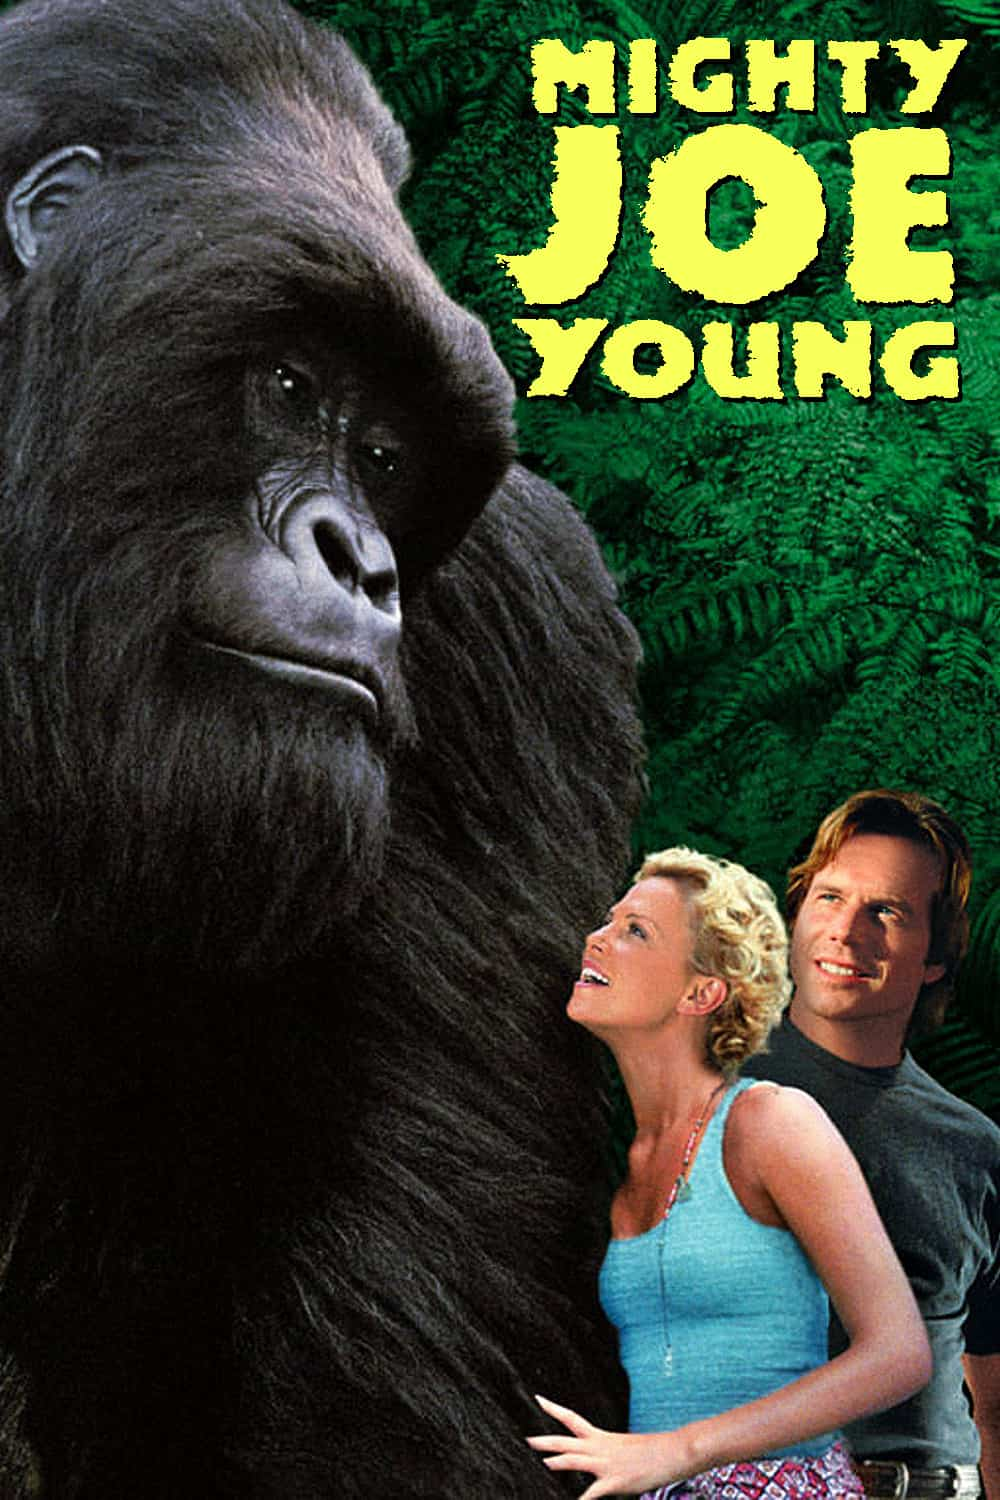 Mighty Joe Young, 1998